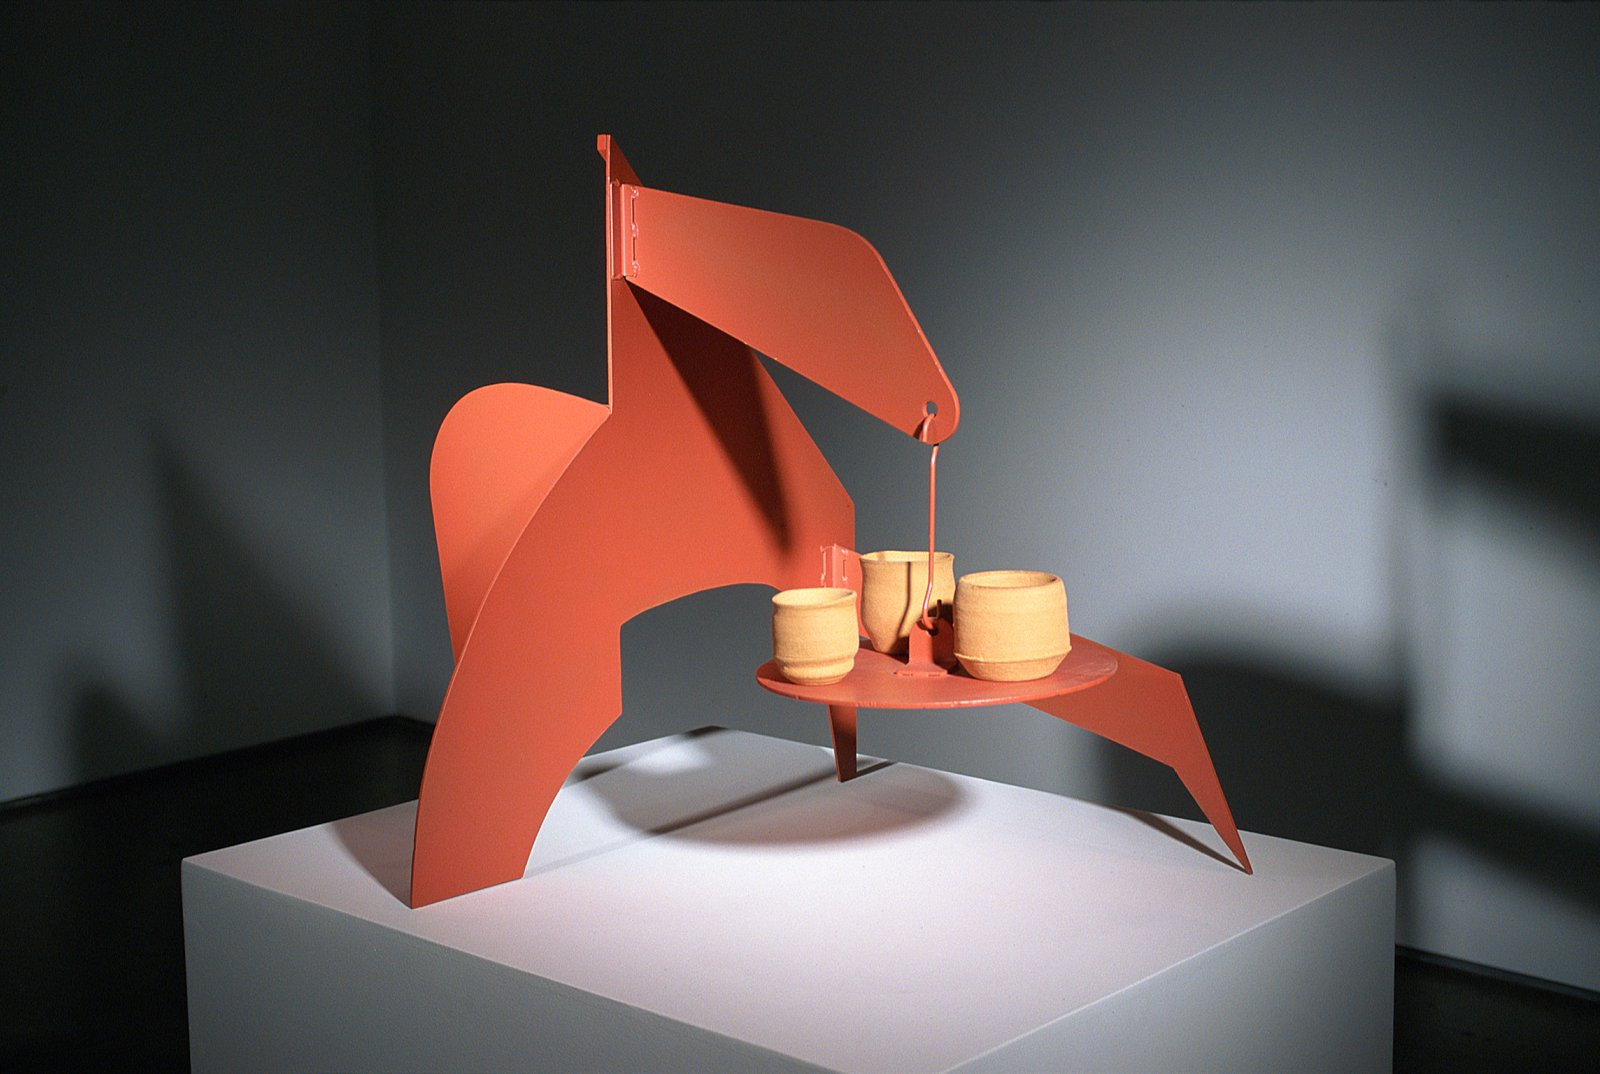 Damian Moppett, Untitled (Stabile A), 2005, iron, paint and stoneware, 32 x 28 x 36 in. (81 x 71 x 91 cm) by Damian Moppett